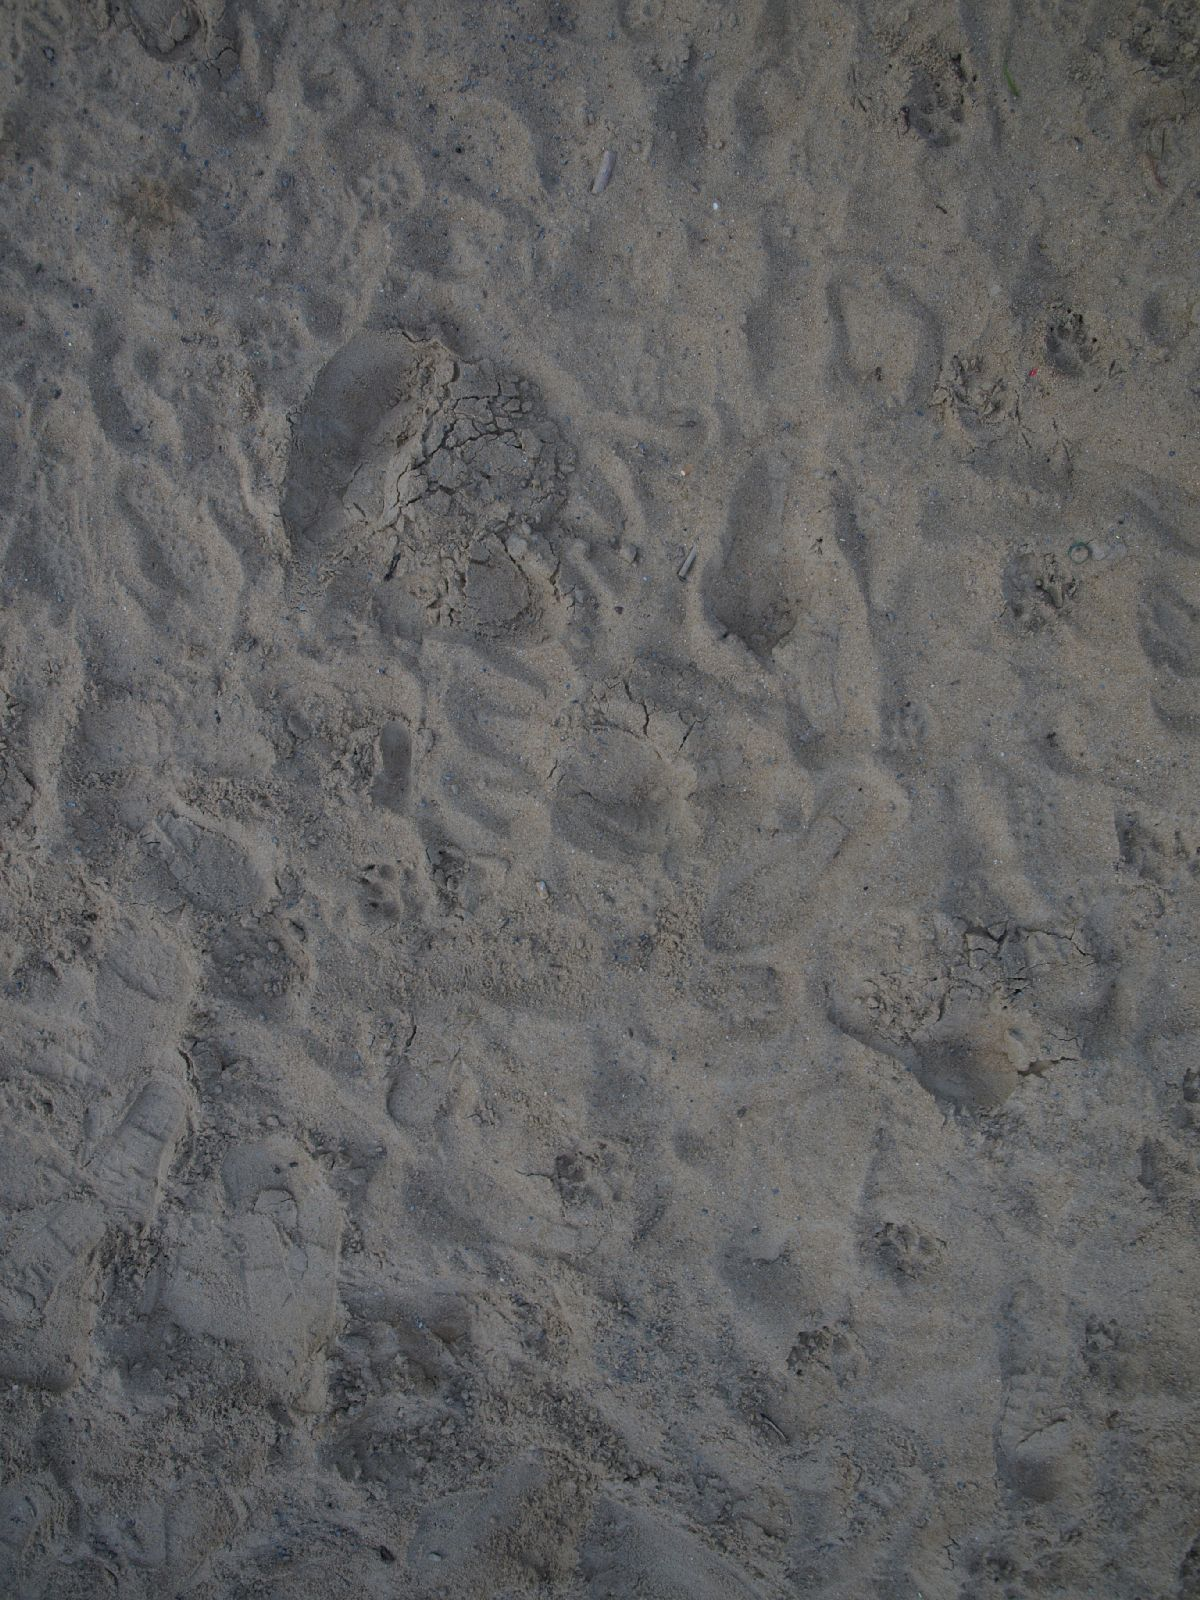 Ground-Nature_Texture_A_P4201602